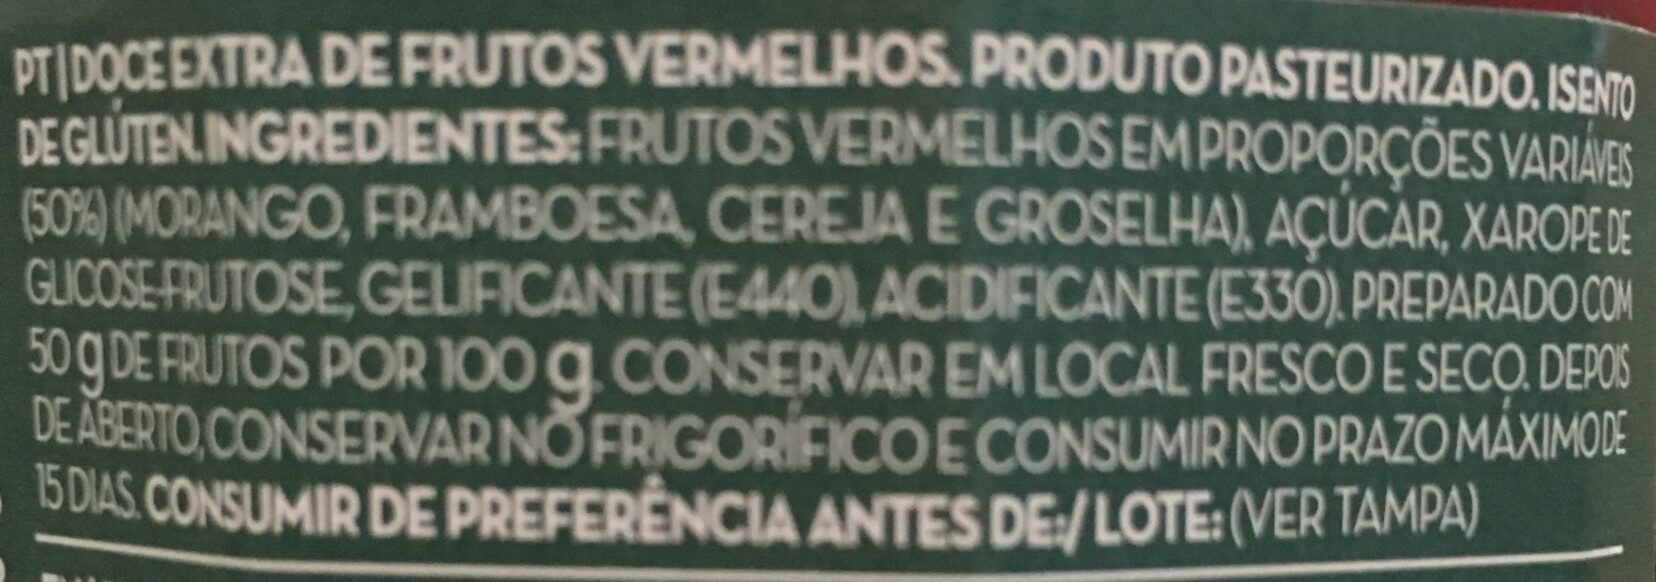 Doce extra 4 frutos vermelhos - Ingredients